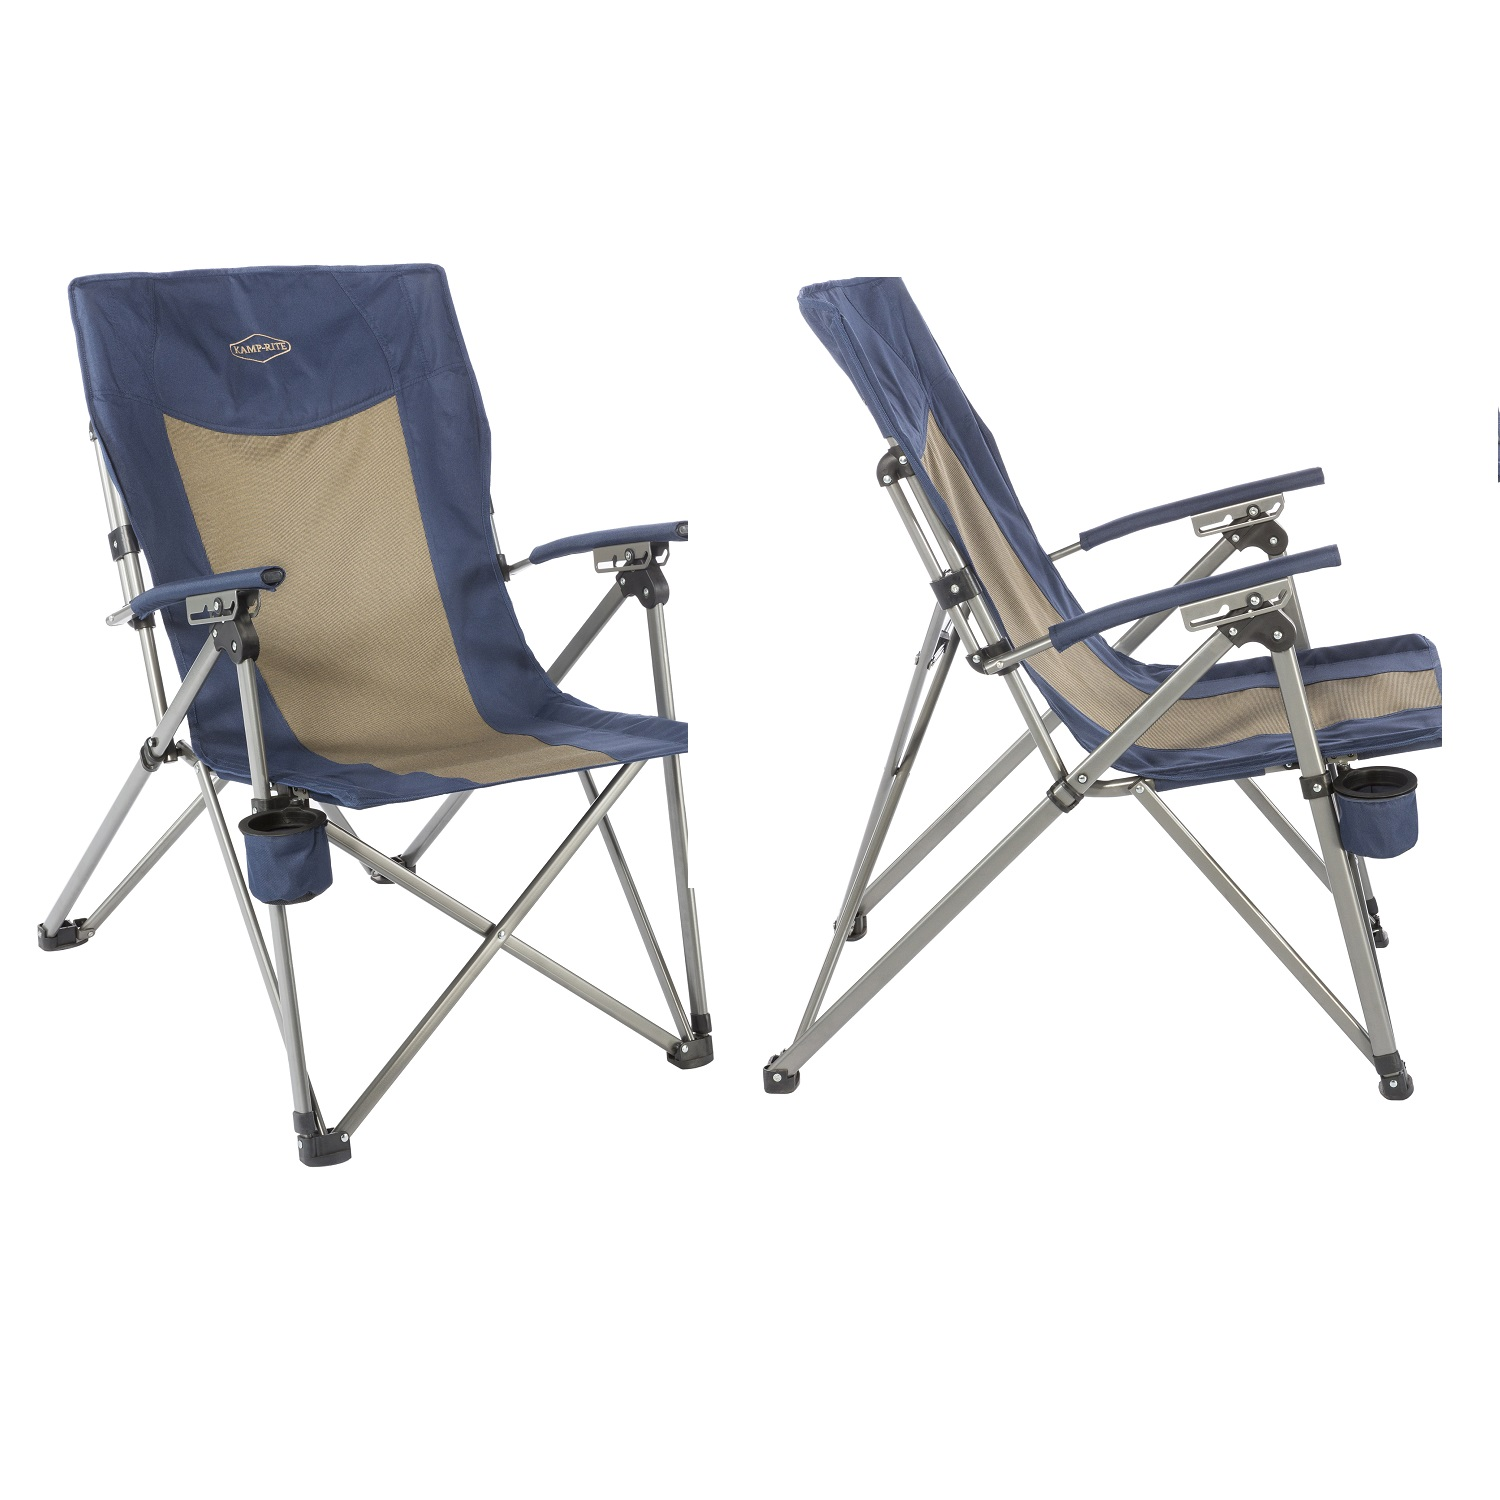 Awe Inspiring Kamp Rite 3 Position Hard Arm Reclining Chair W Cup Holder Dailytribune Chair Design For Home Dailytribuneorg